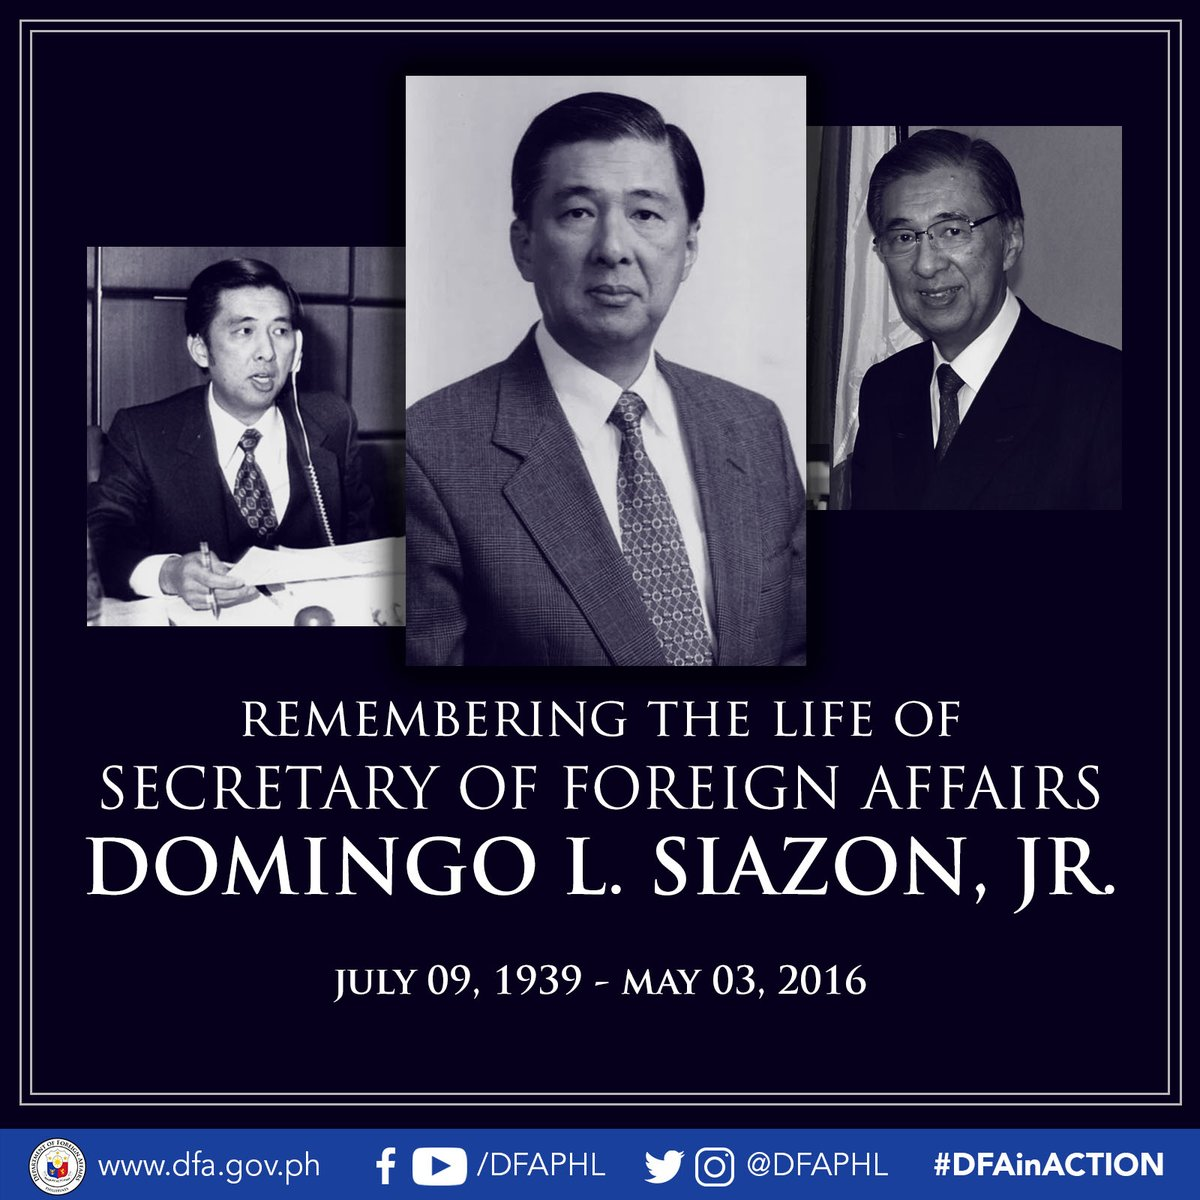 Today, July 09, marks the 81st birth anniversary of former Foreign Affairs Secretary Domingo L. Siazon, Jr. He served as Secretary of Foreign Affairs from 01 May 1995 to 20 Jan 2001, under the respective terms of Pres. Fidel V. Ramos & former Pres. Joseph Ejercito Estrada. (1/4) https://t.co/EhIvGqgUjG